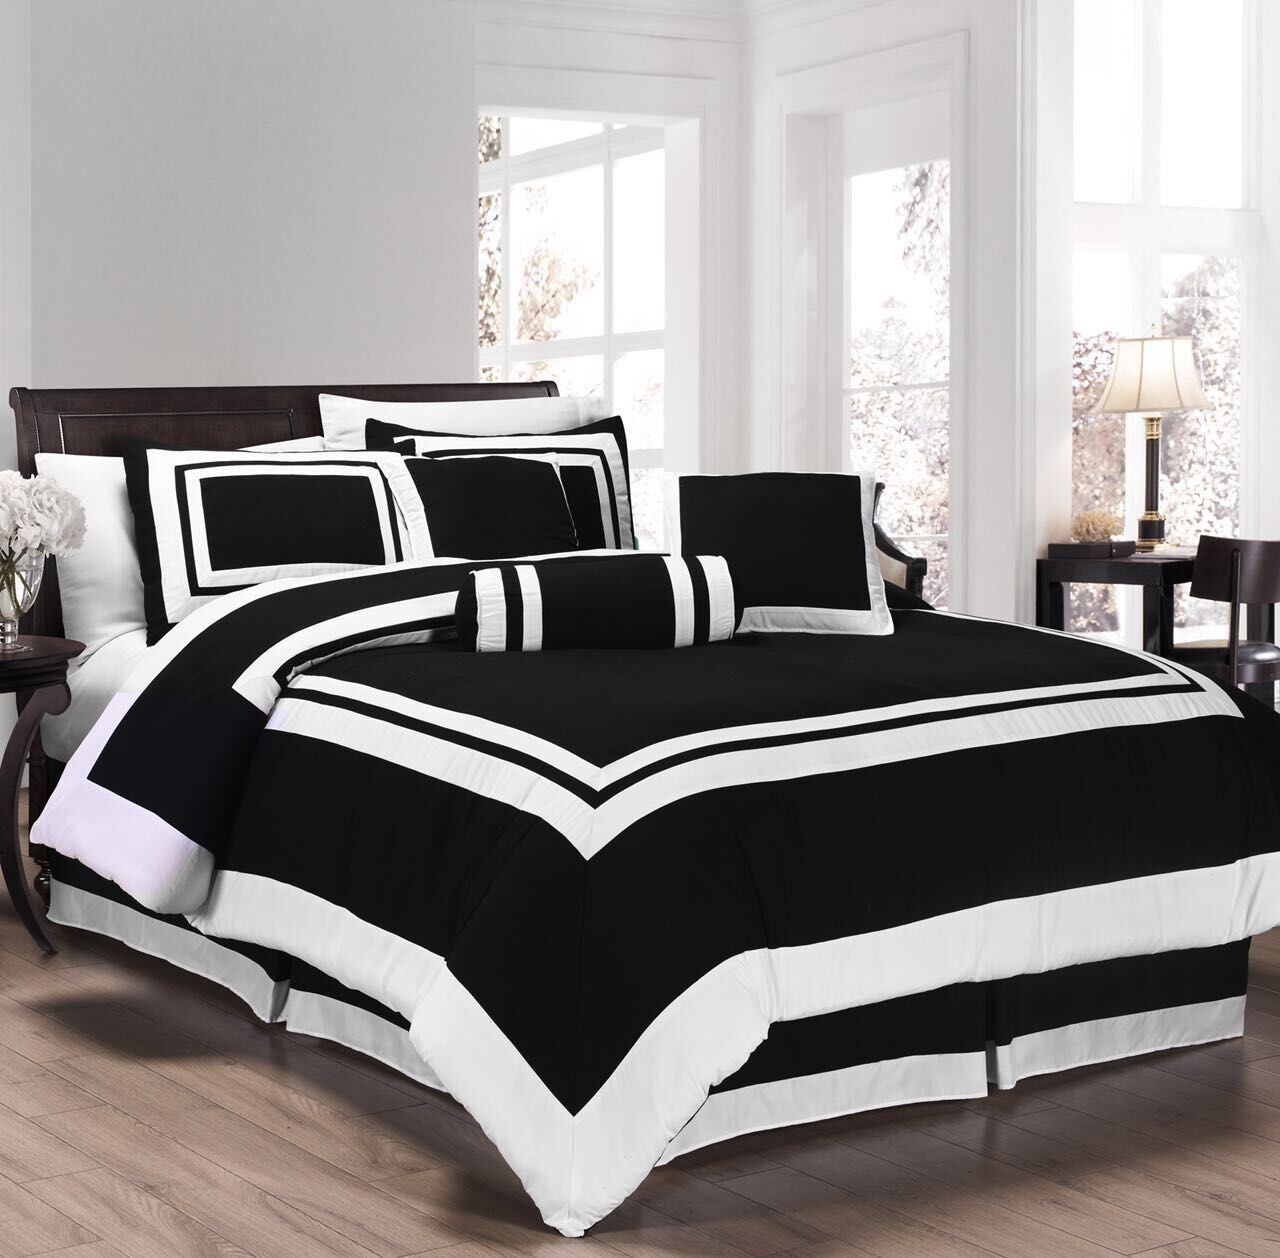 Burgundy Black Bedding Sets Sale Comforter Sets Black Bedding